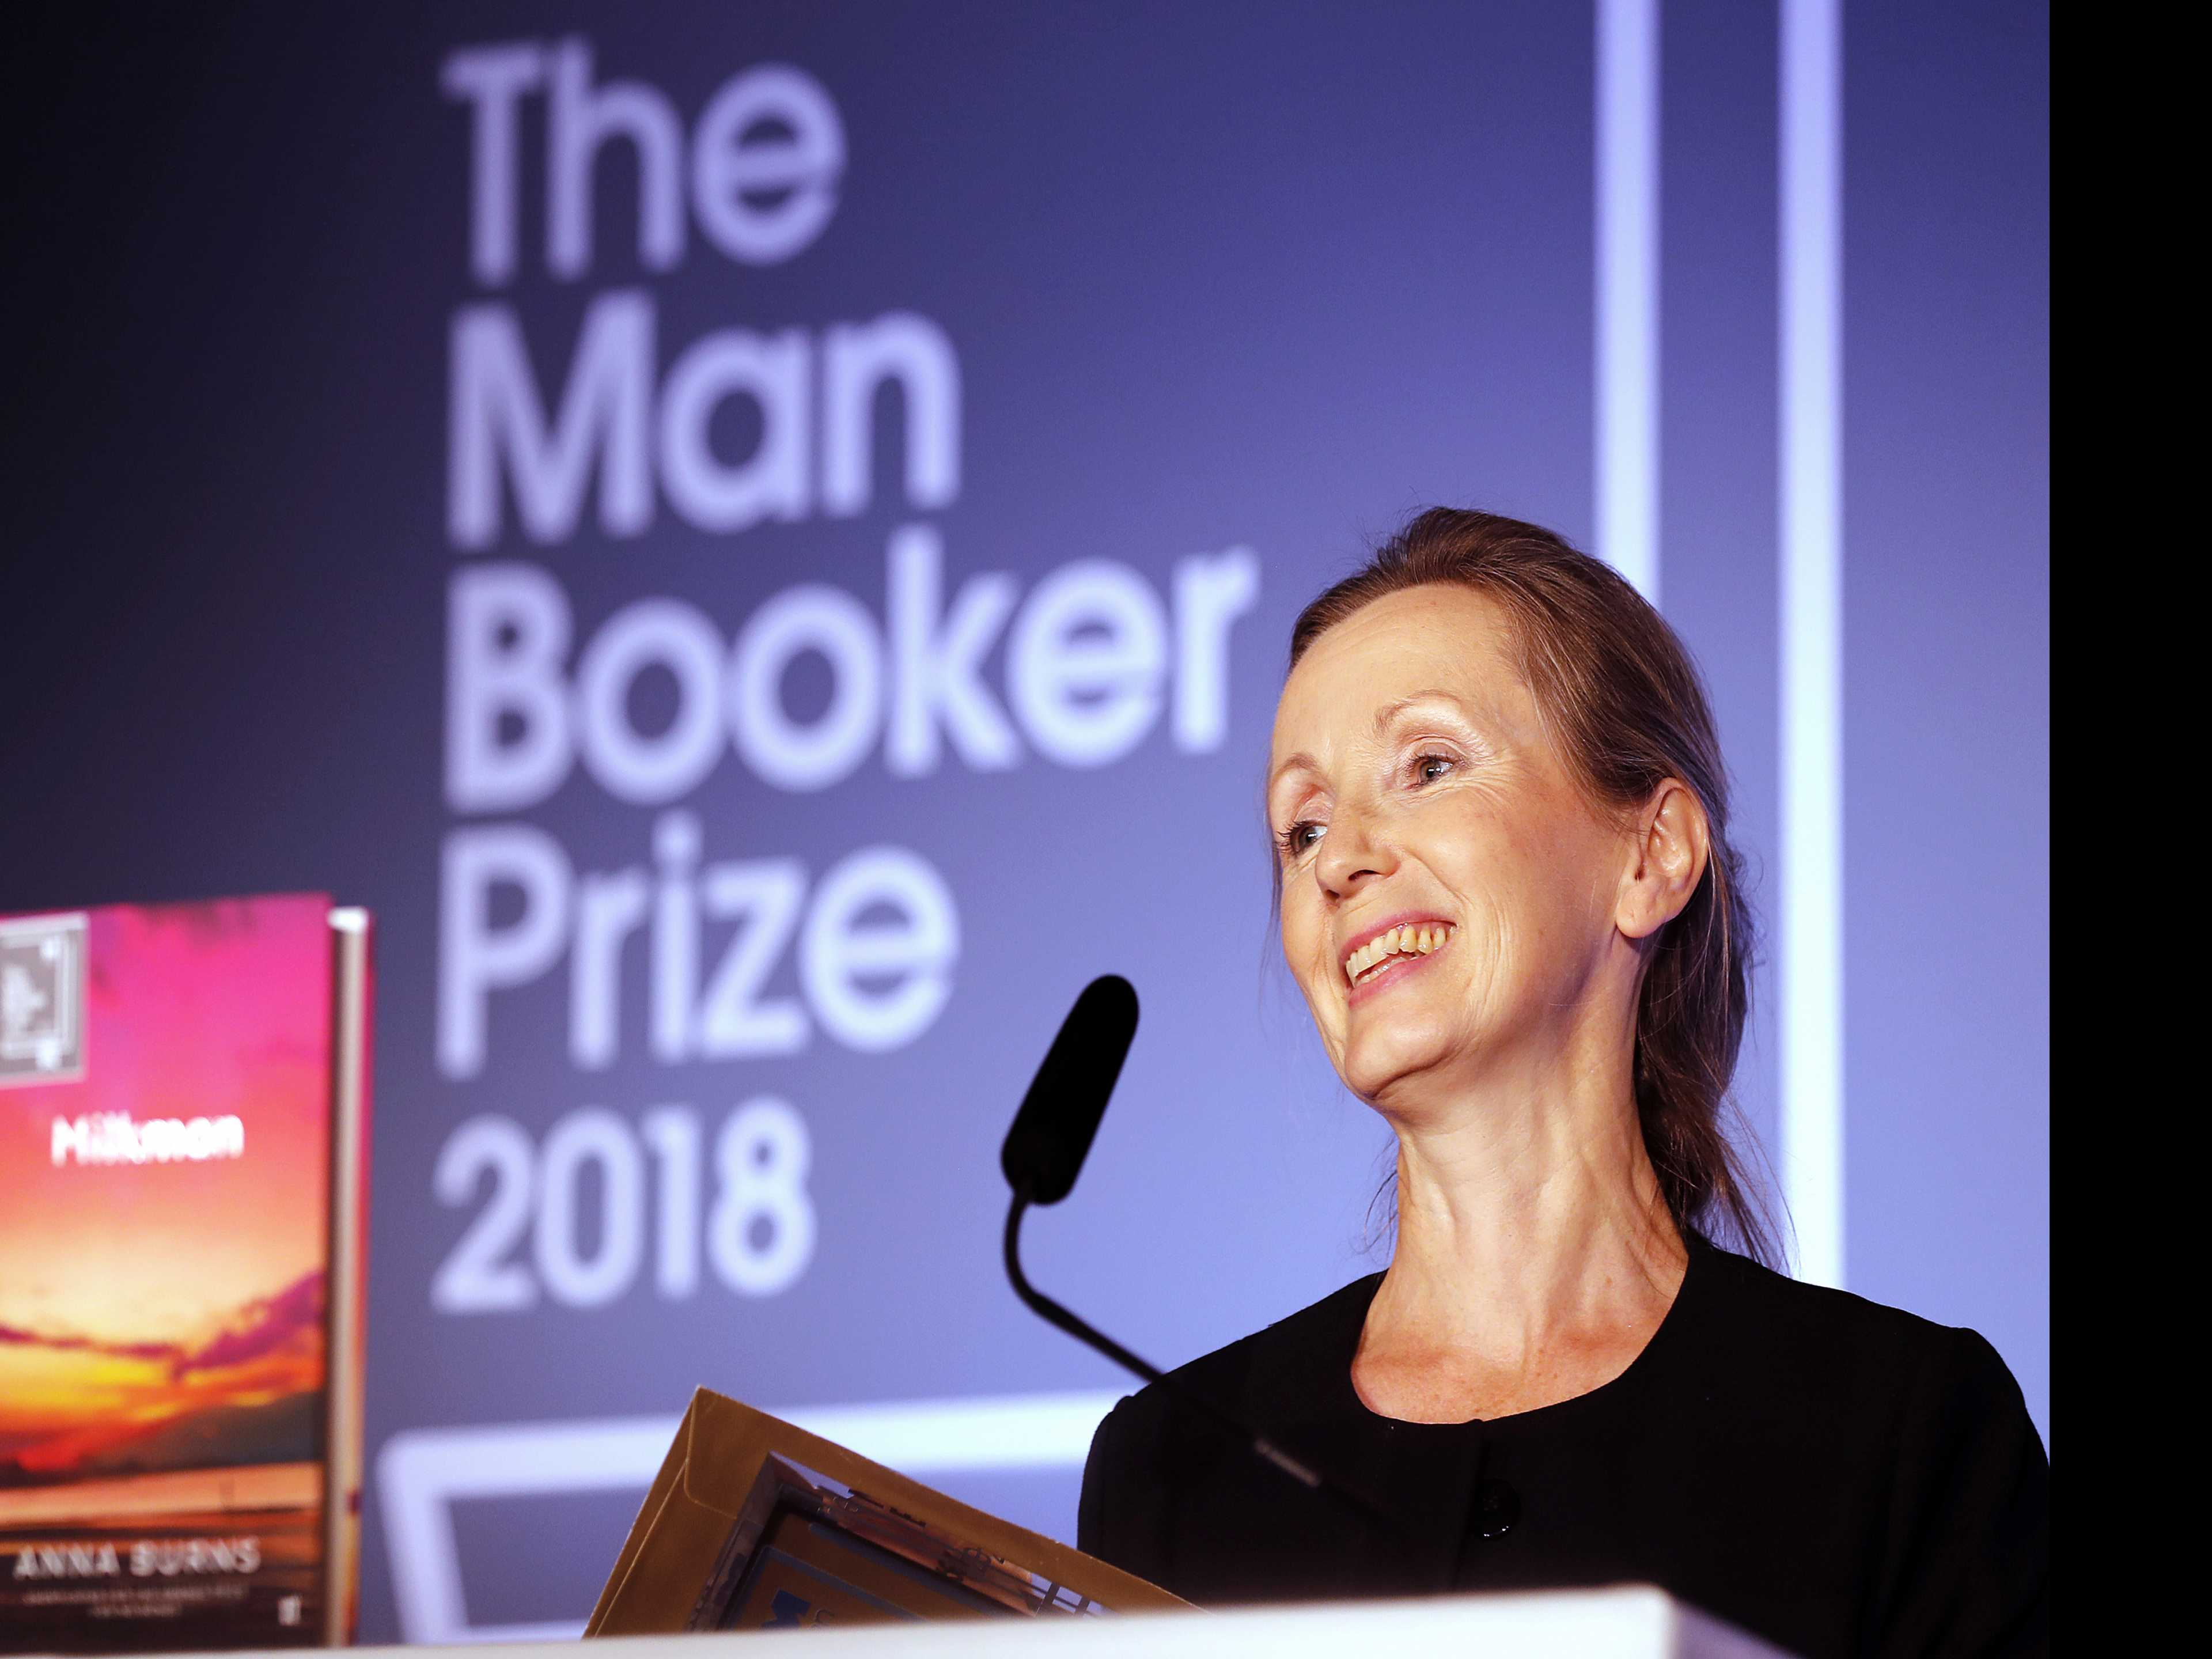 Booker Prize for Fiction Secures New Financial Backer